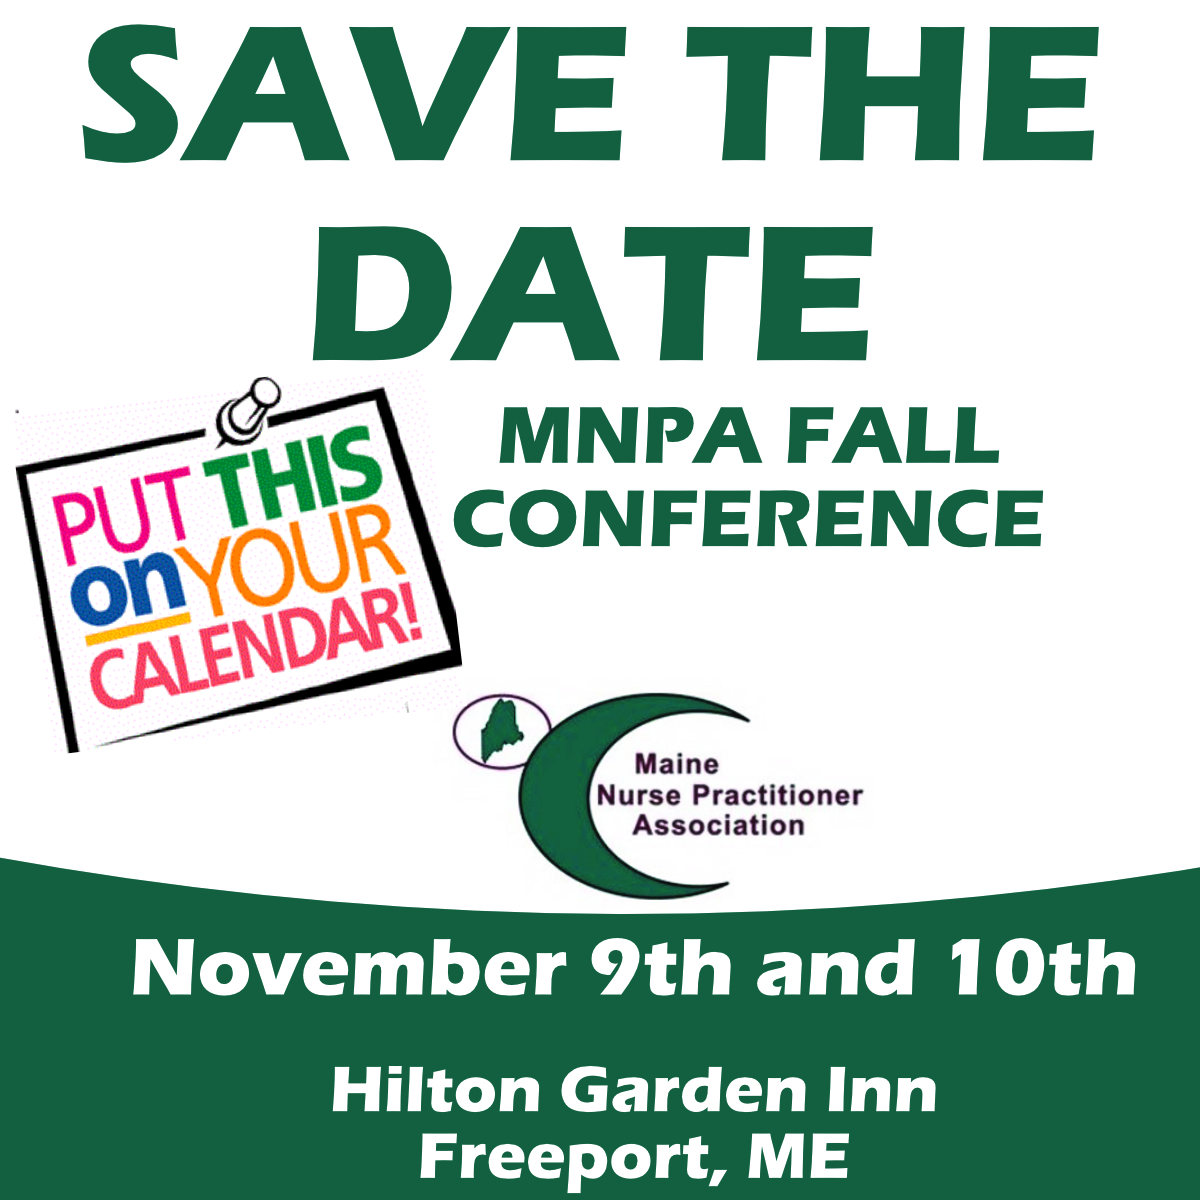 MNPA Fall Conference Save the Date